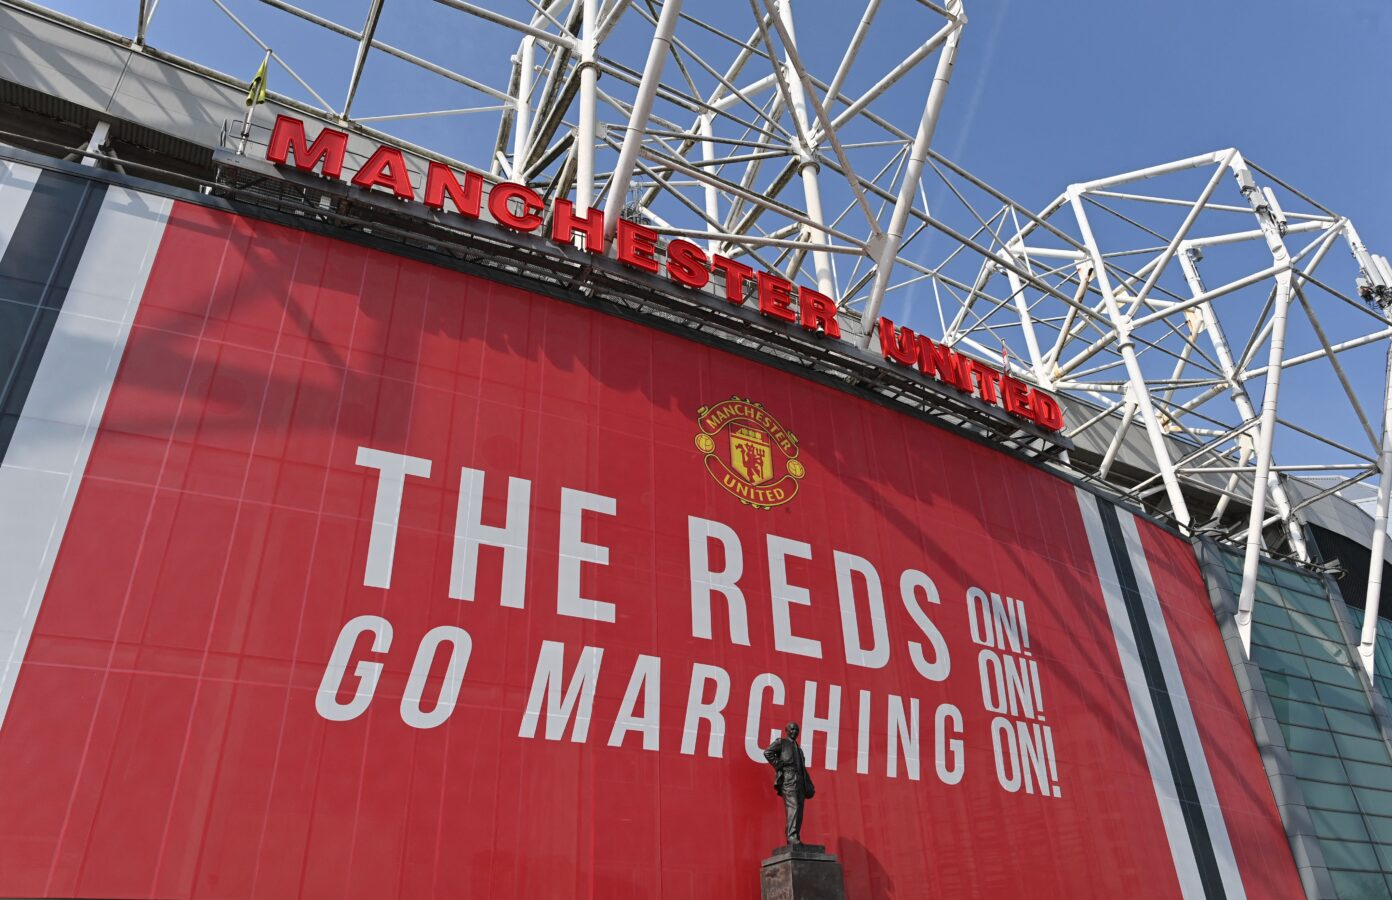 LIVE: Man United vs Liverpool - Follow the Reds in action at Old Trafford